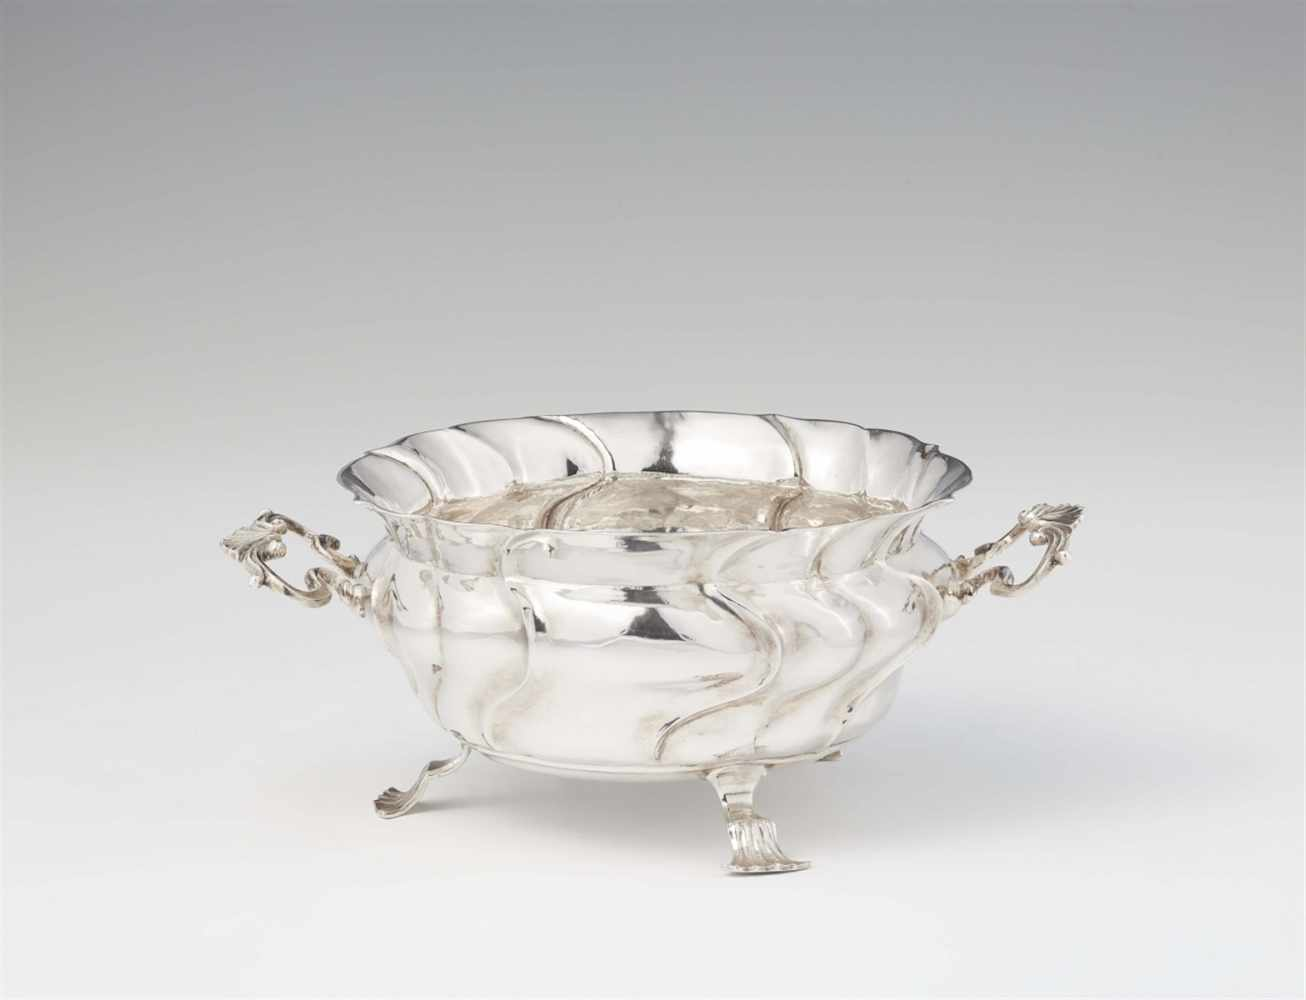 An Augsburg Rococo silver dishBombé form twist fluted dish with scroll handles resting on three